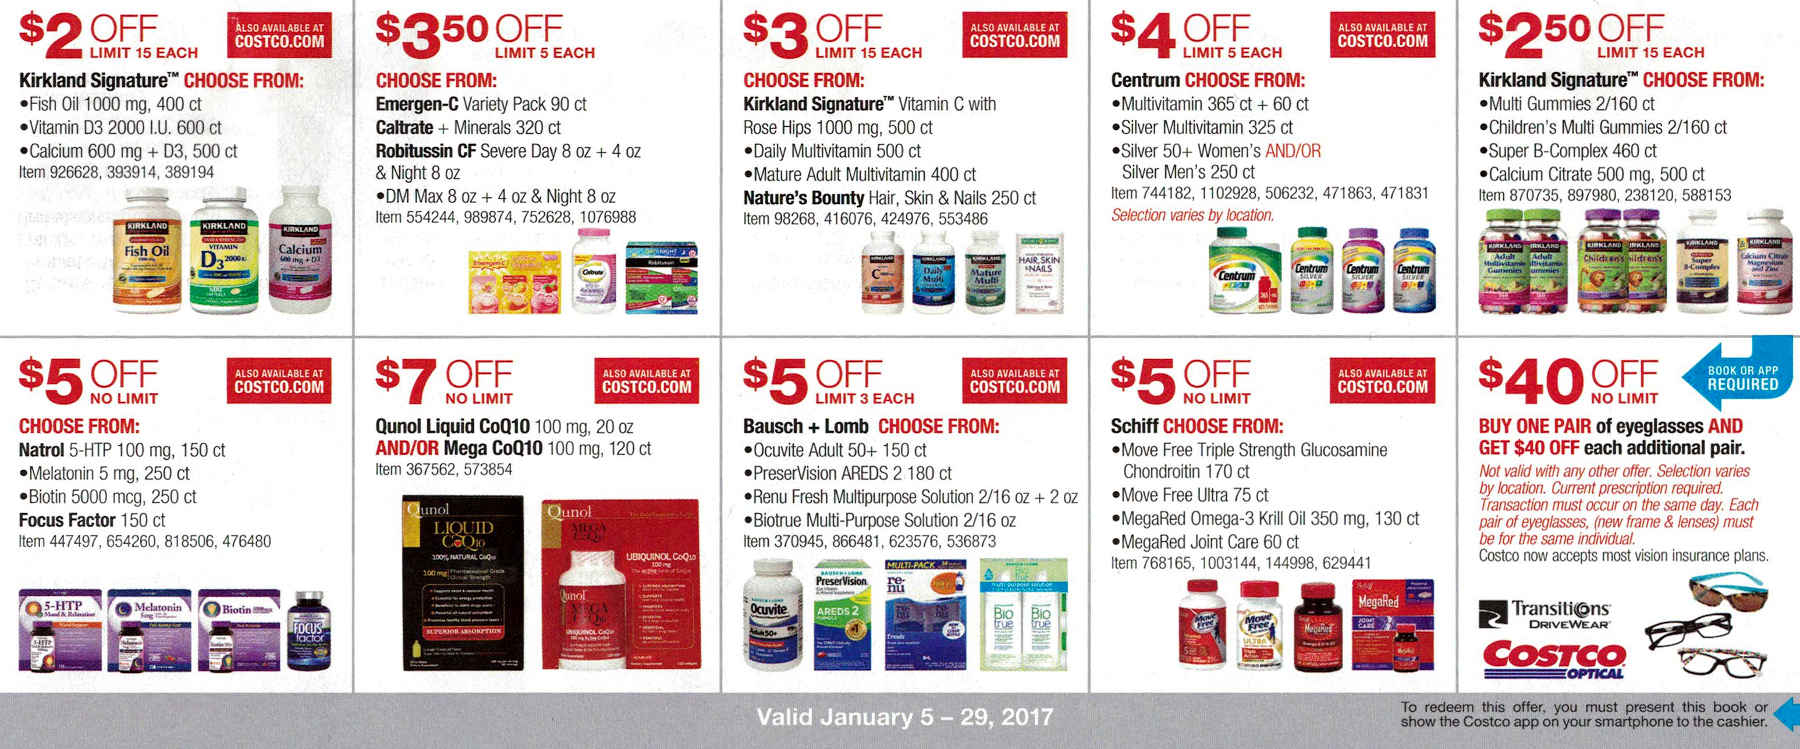 January 2017 Costco Coupon Book Page 11